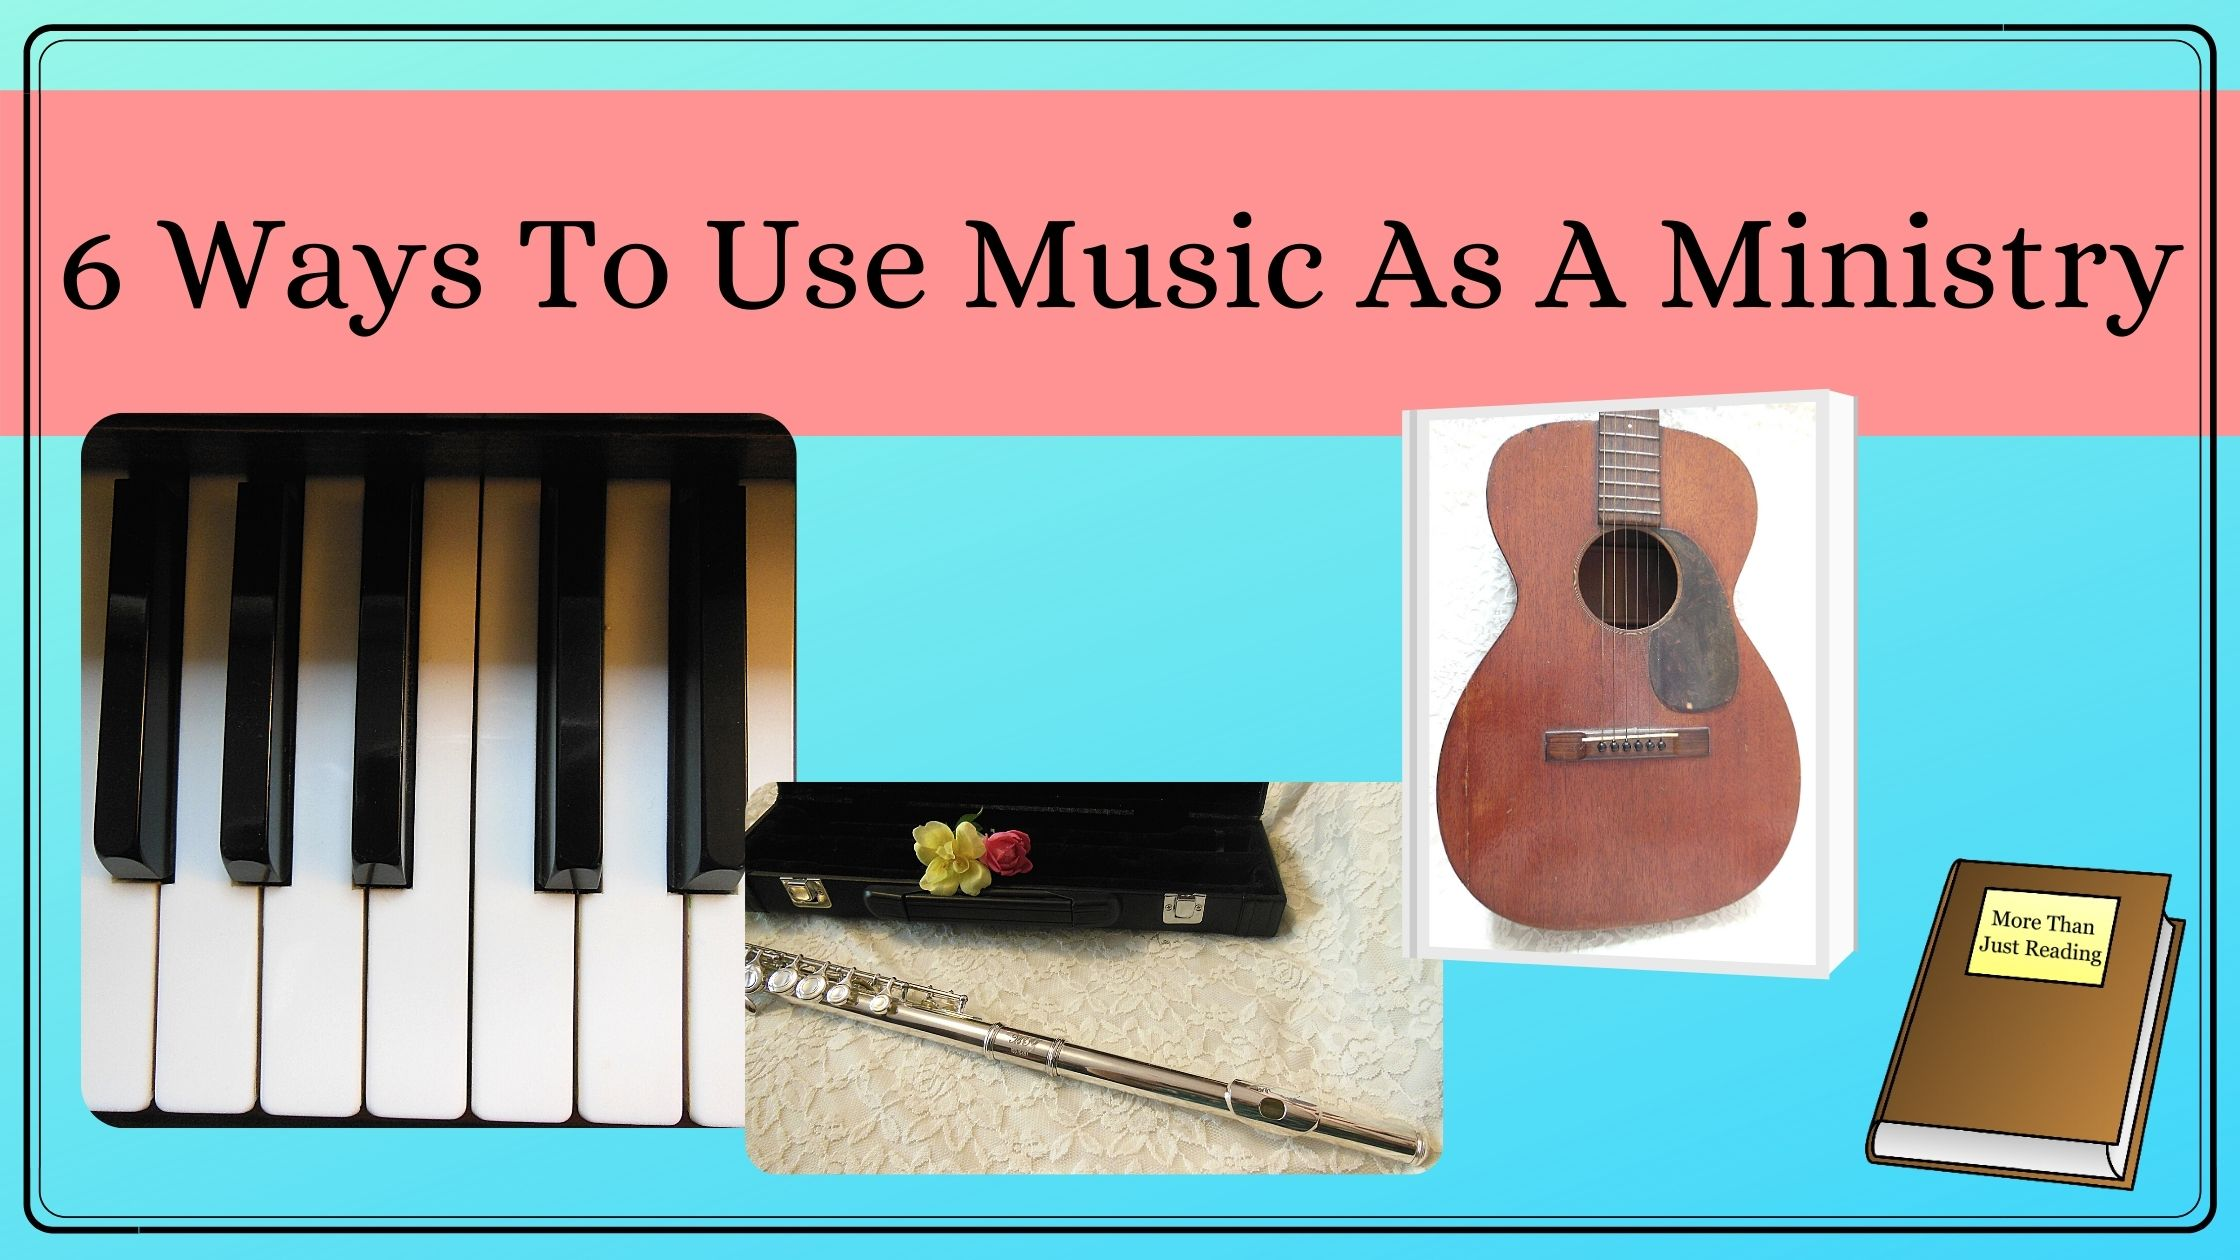 6 ways to use music as a ministry